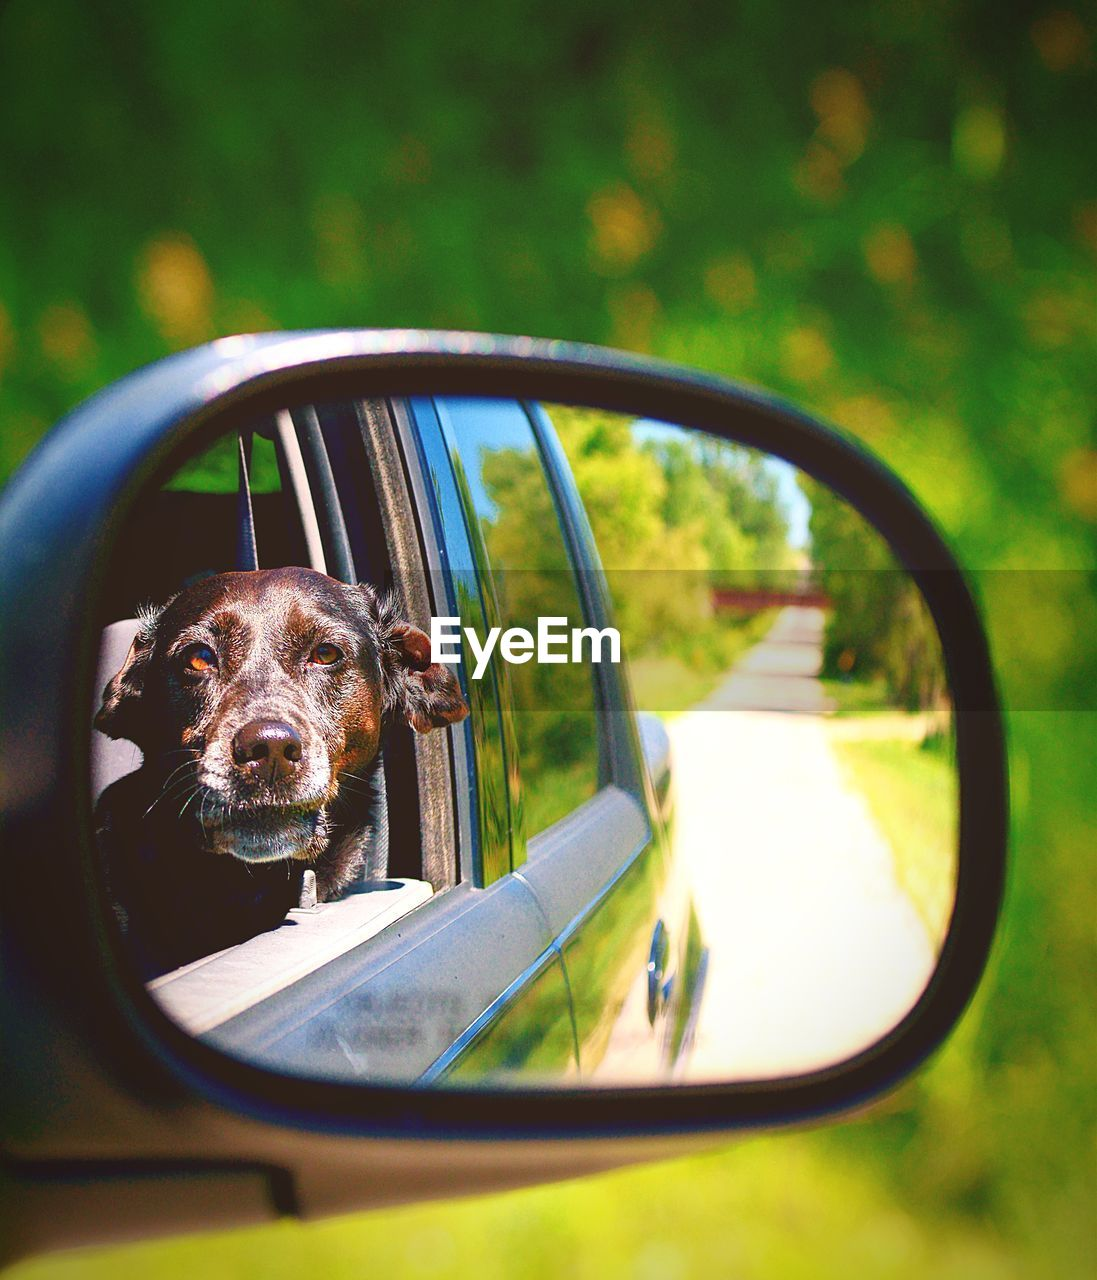 Reflection of dog in side-view mirror of car